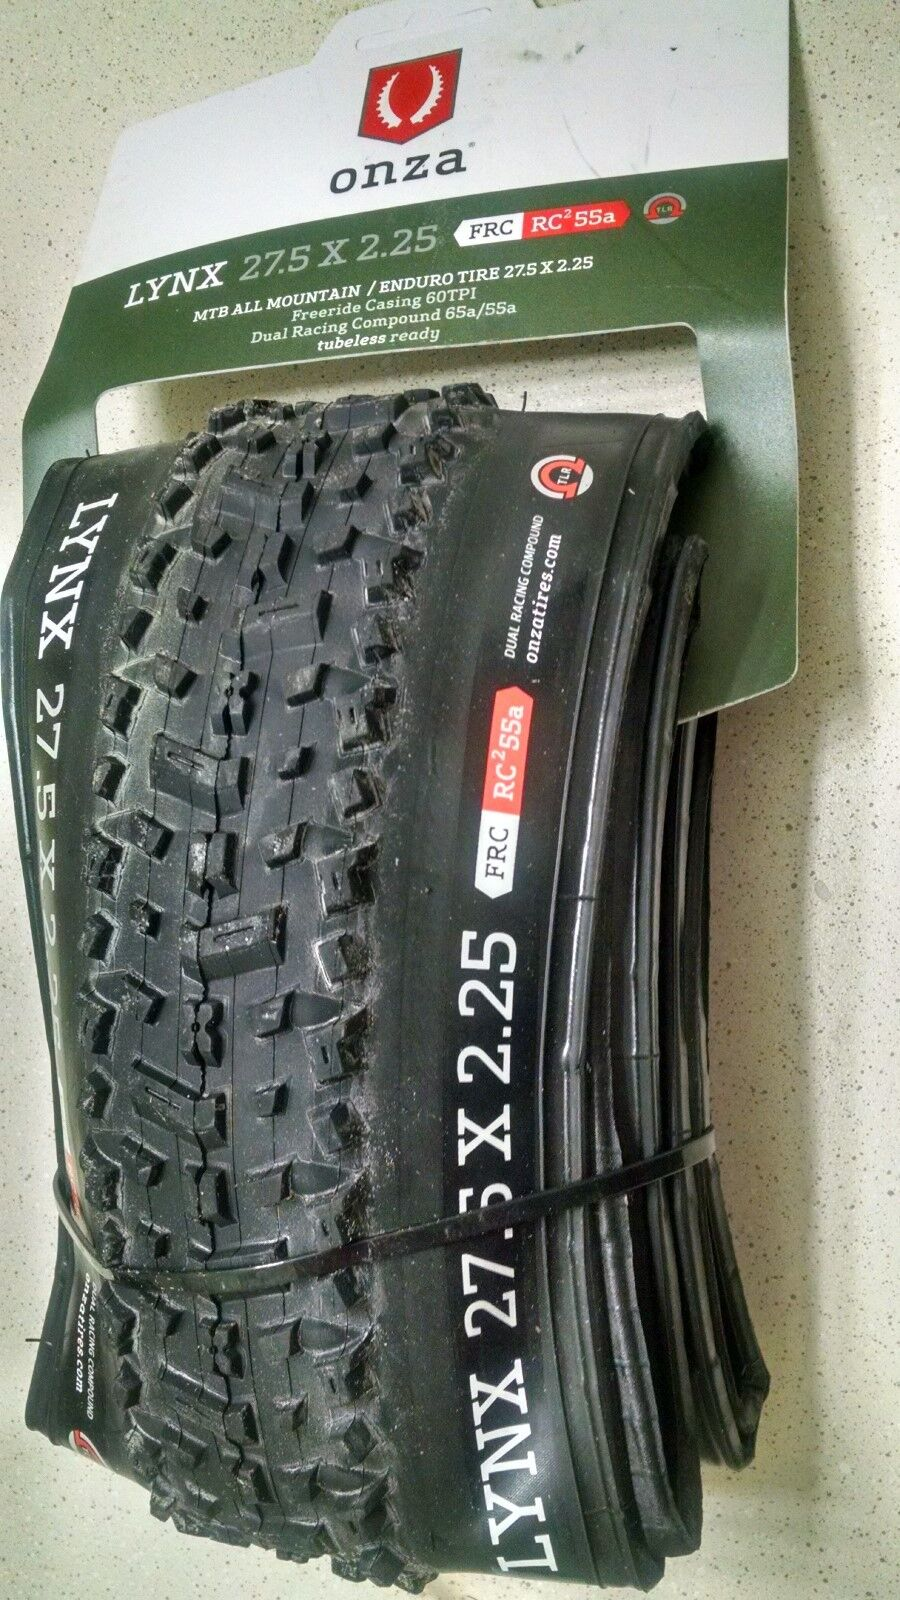 Onza LYNX 27.5 x 2.25 Tubeless Enduro AM Tire FRC RC255a Dual Racing Compound